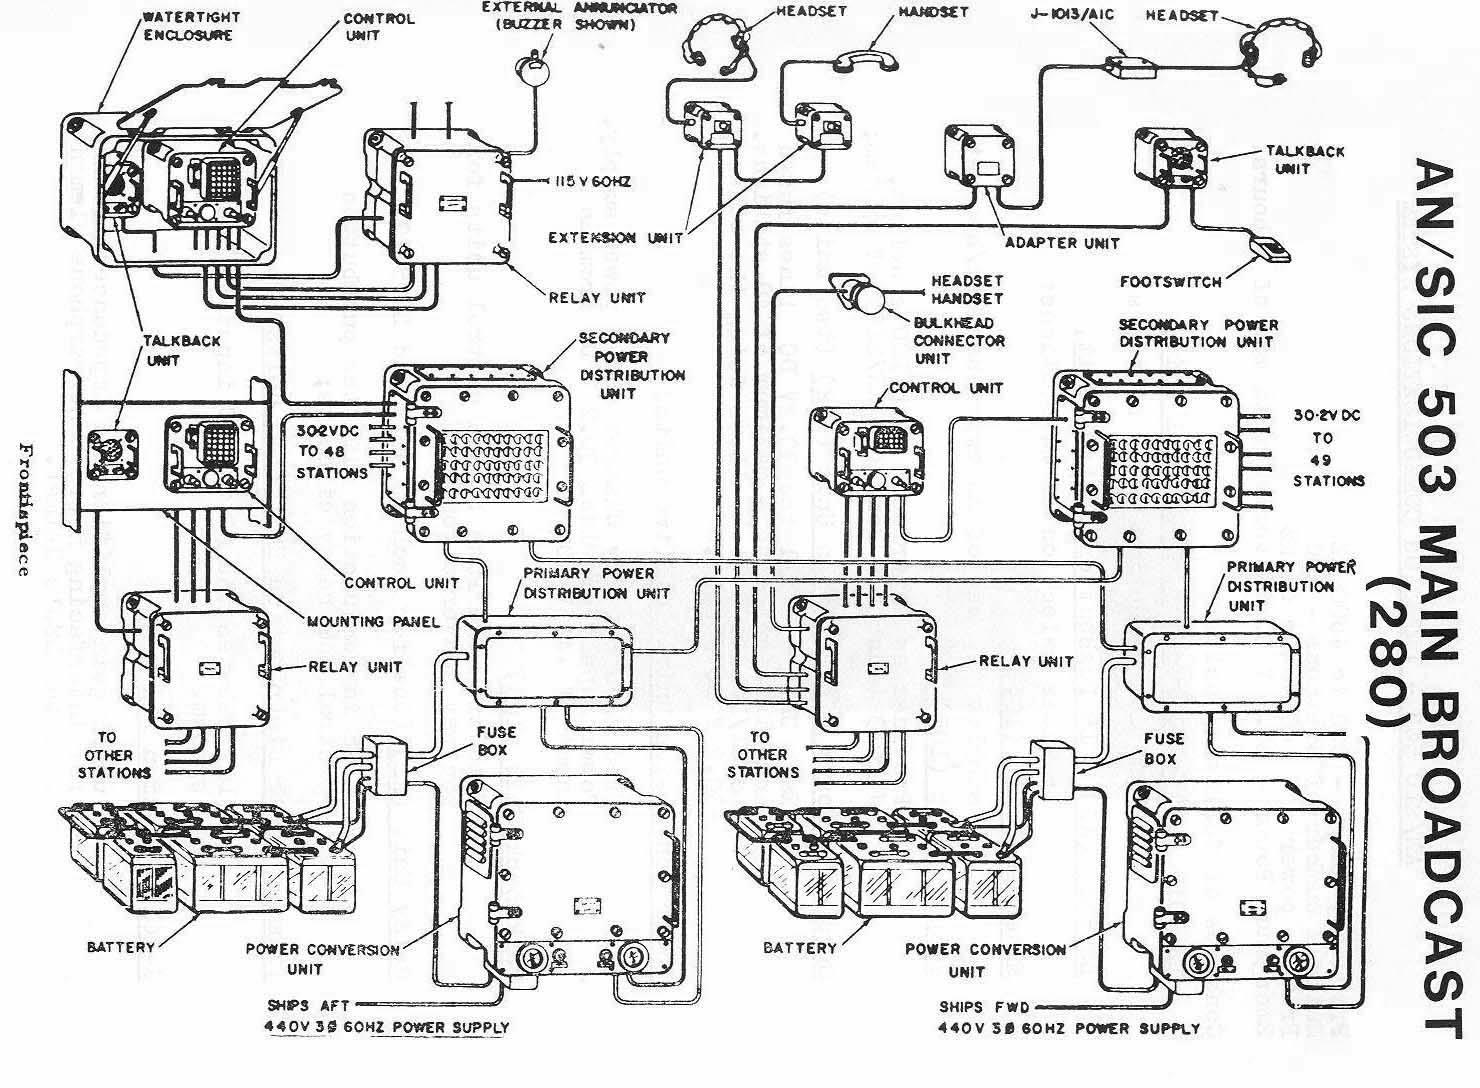 Admirable Broadcast Fm Transmitter Auto Electrical Wiring Diagram Wiring Cloud Orsalboapumohammedshrineorg